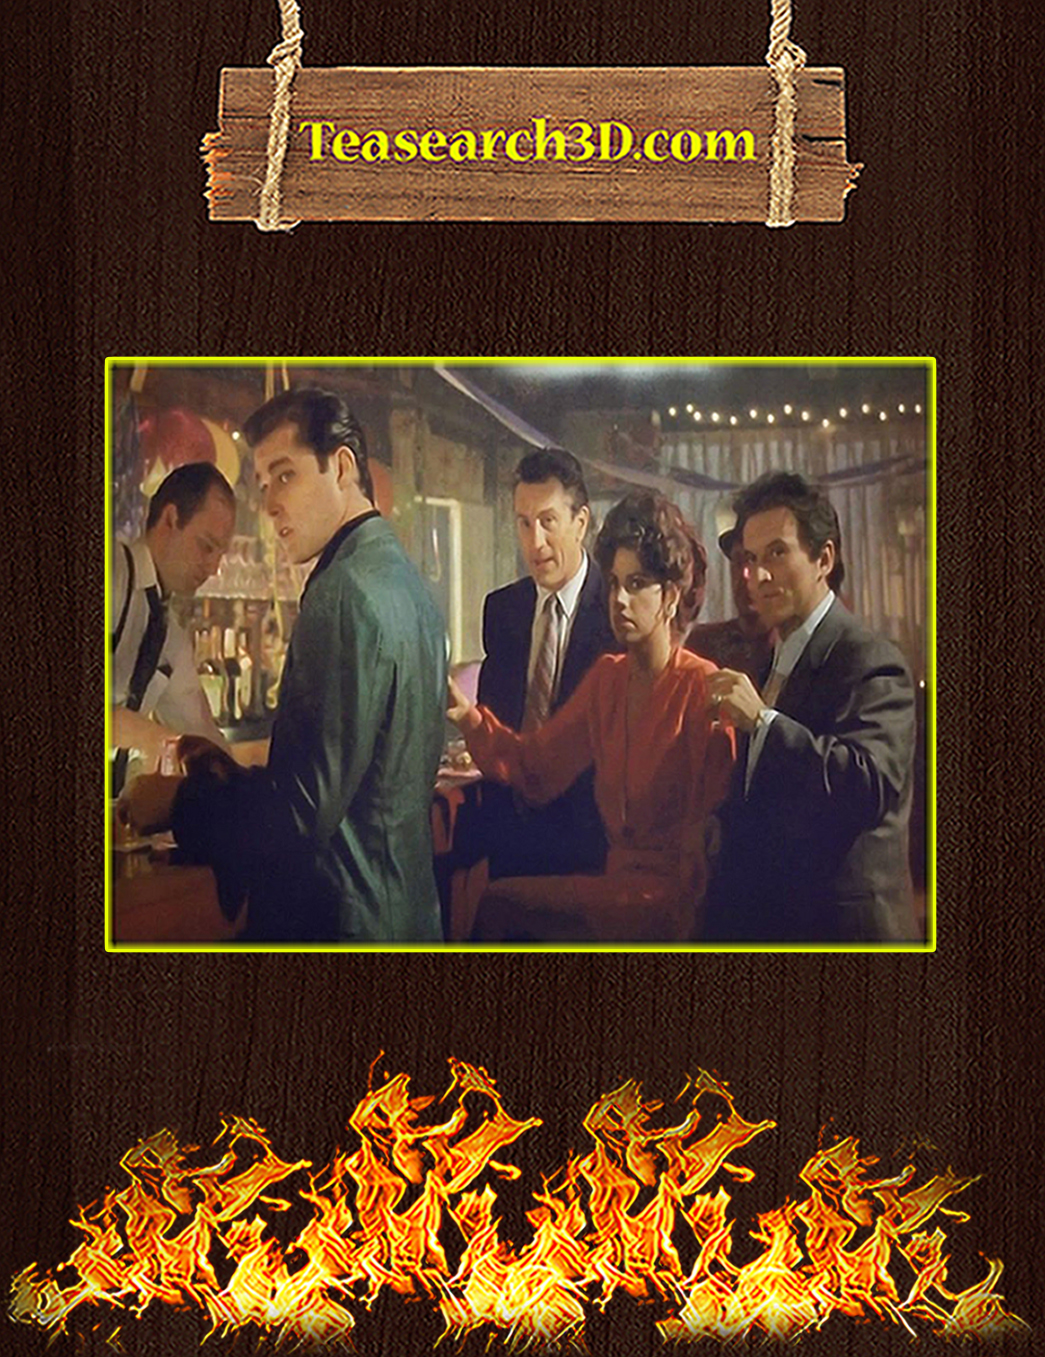 Goodfellas poster A1